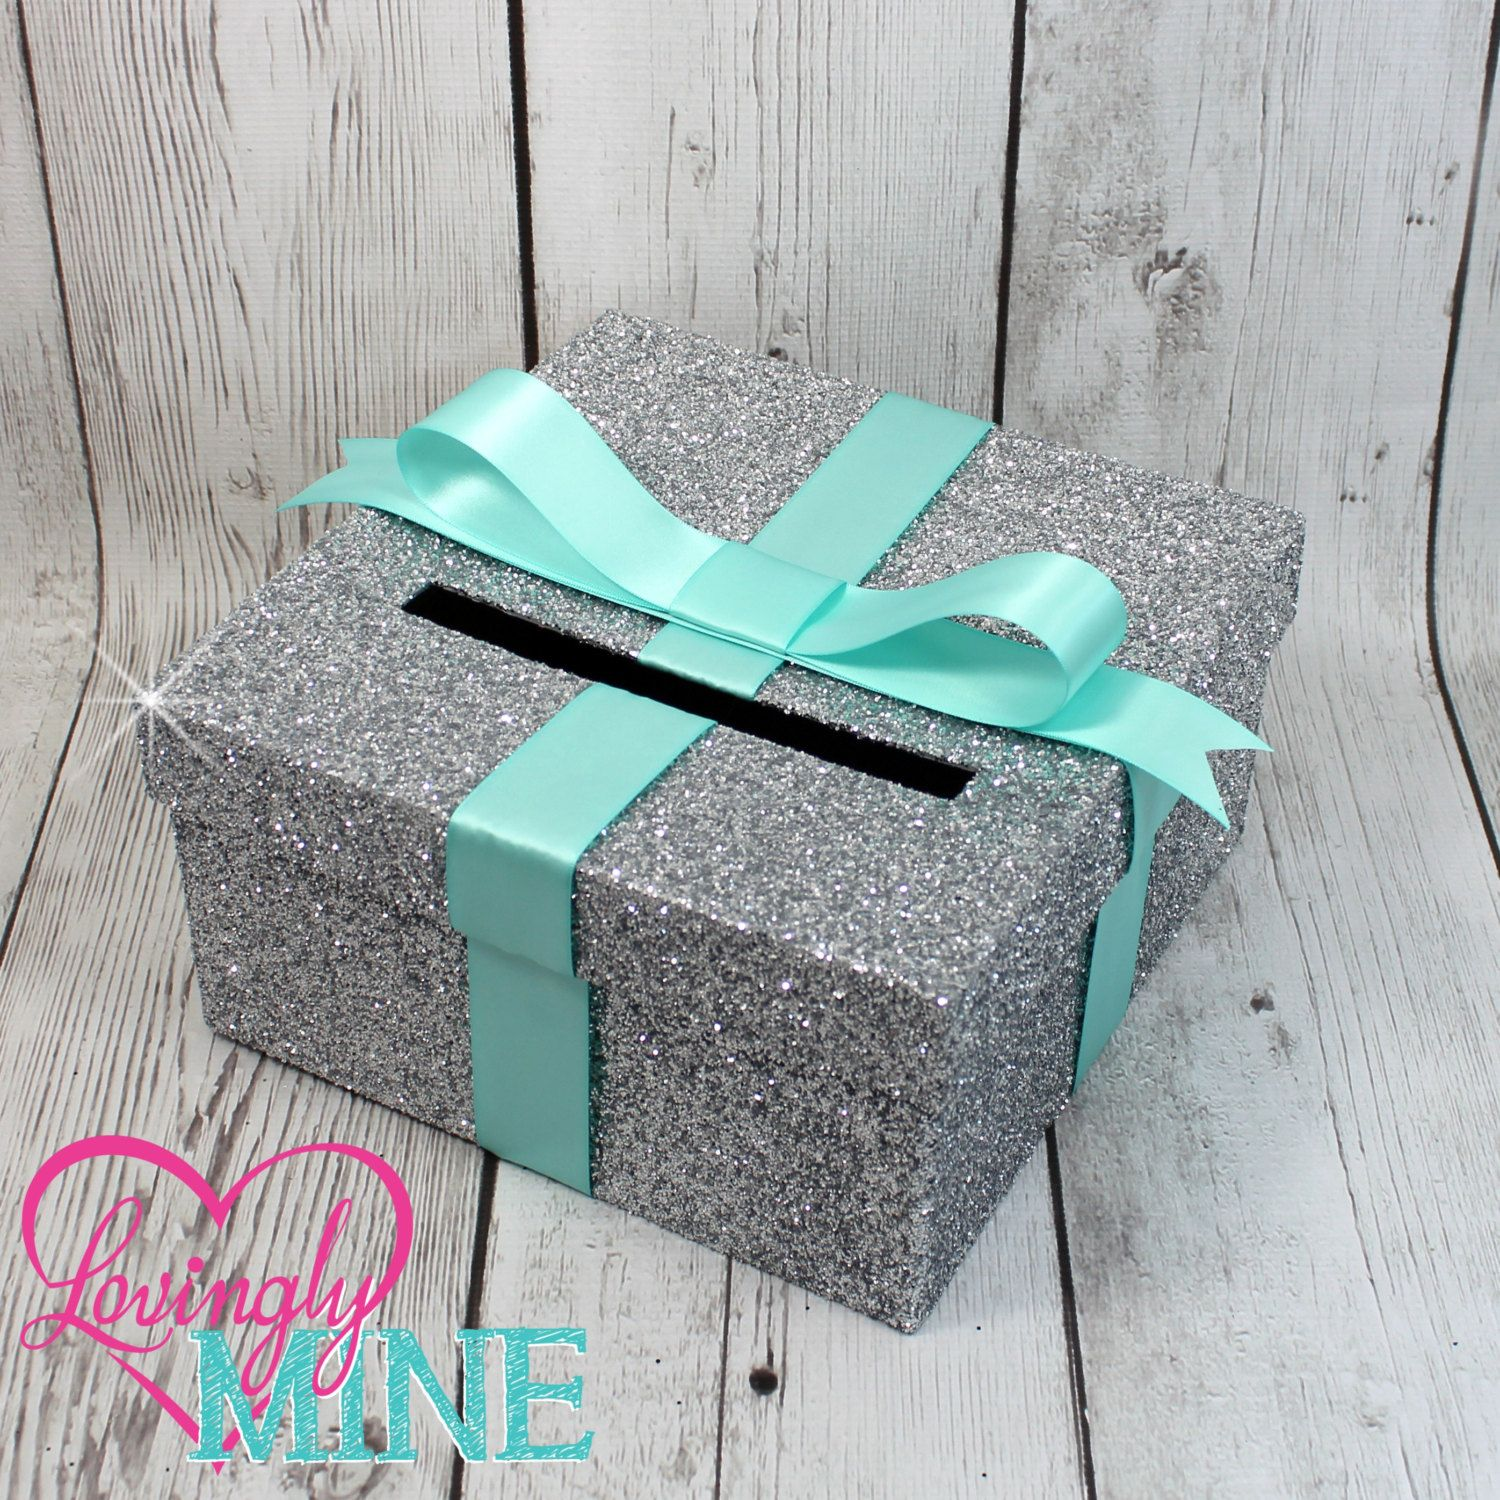 cardbox glitter silver and light aqua blue gift money box for any event baby shower wedding bridal shower birthday party